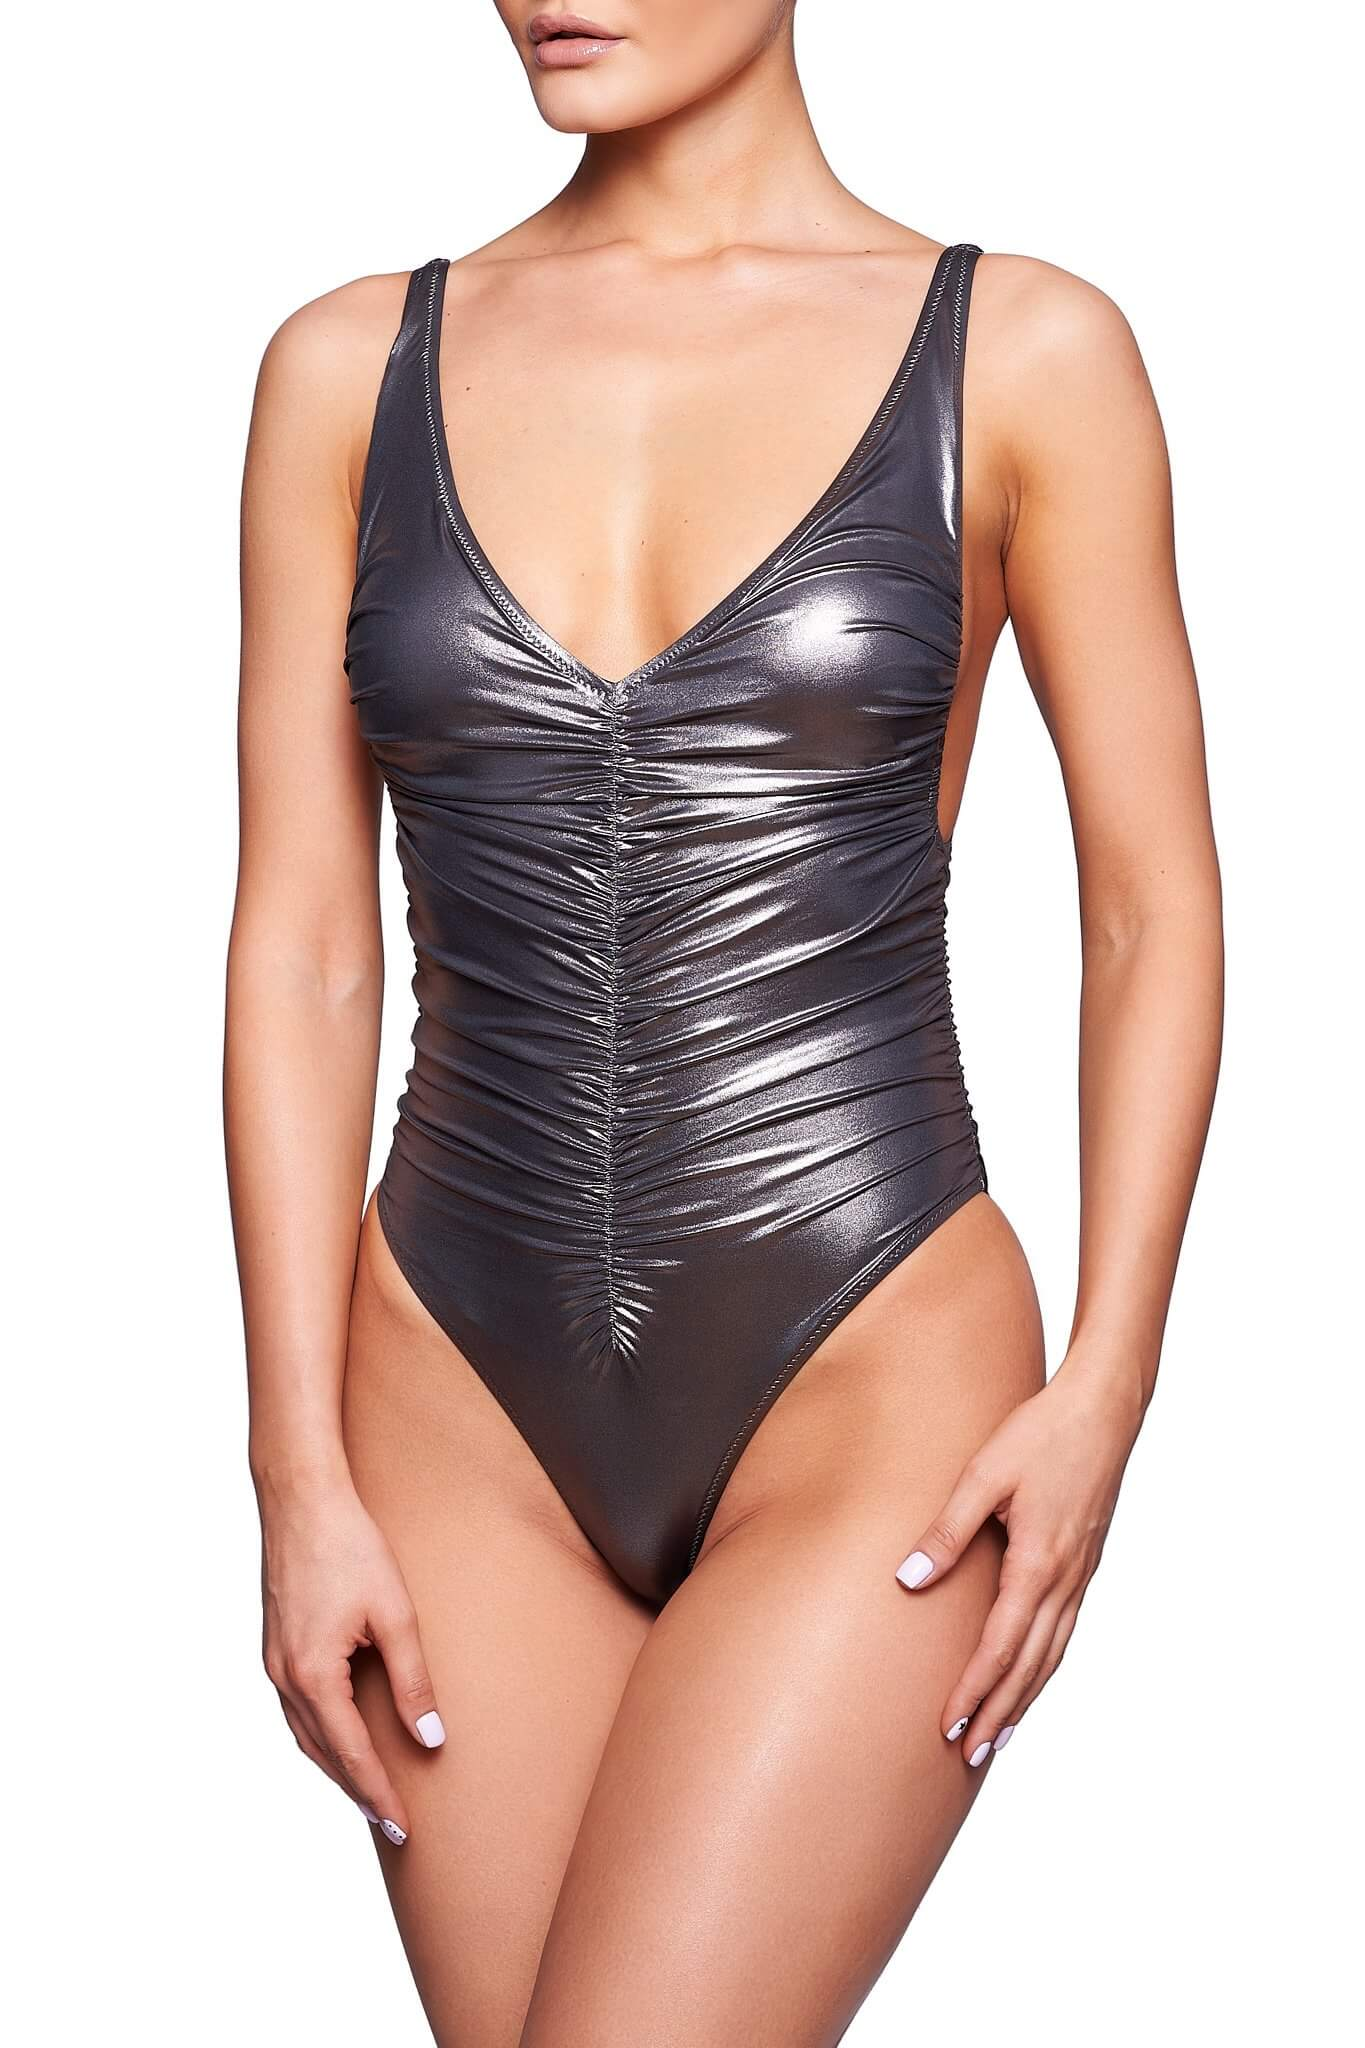 Formentera Gun Metal One-Piece